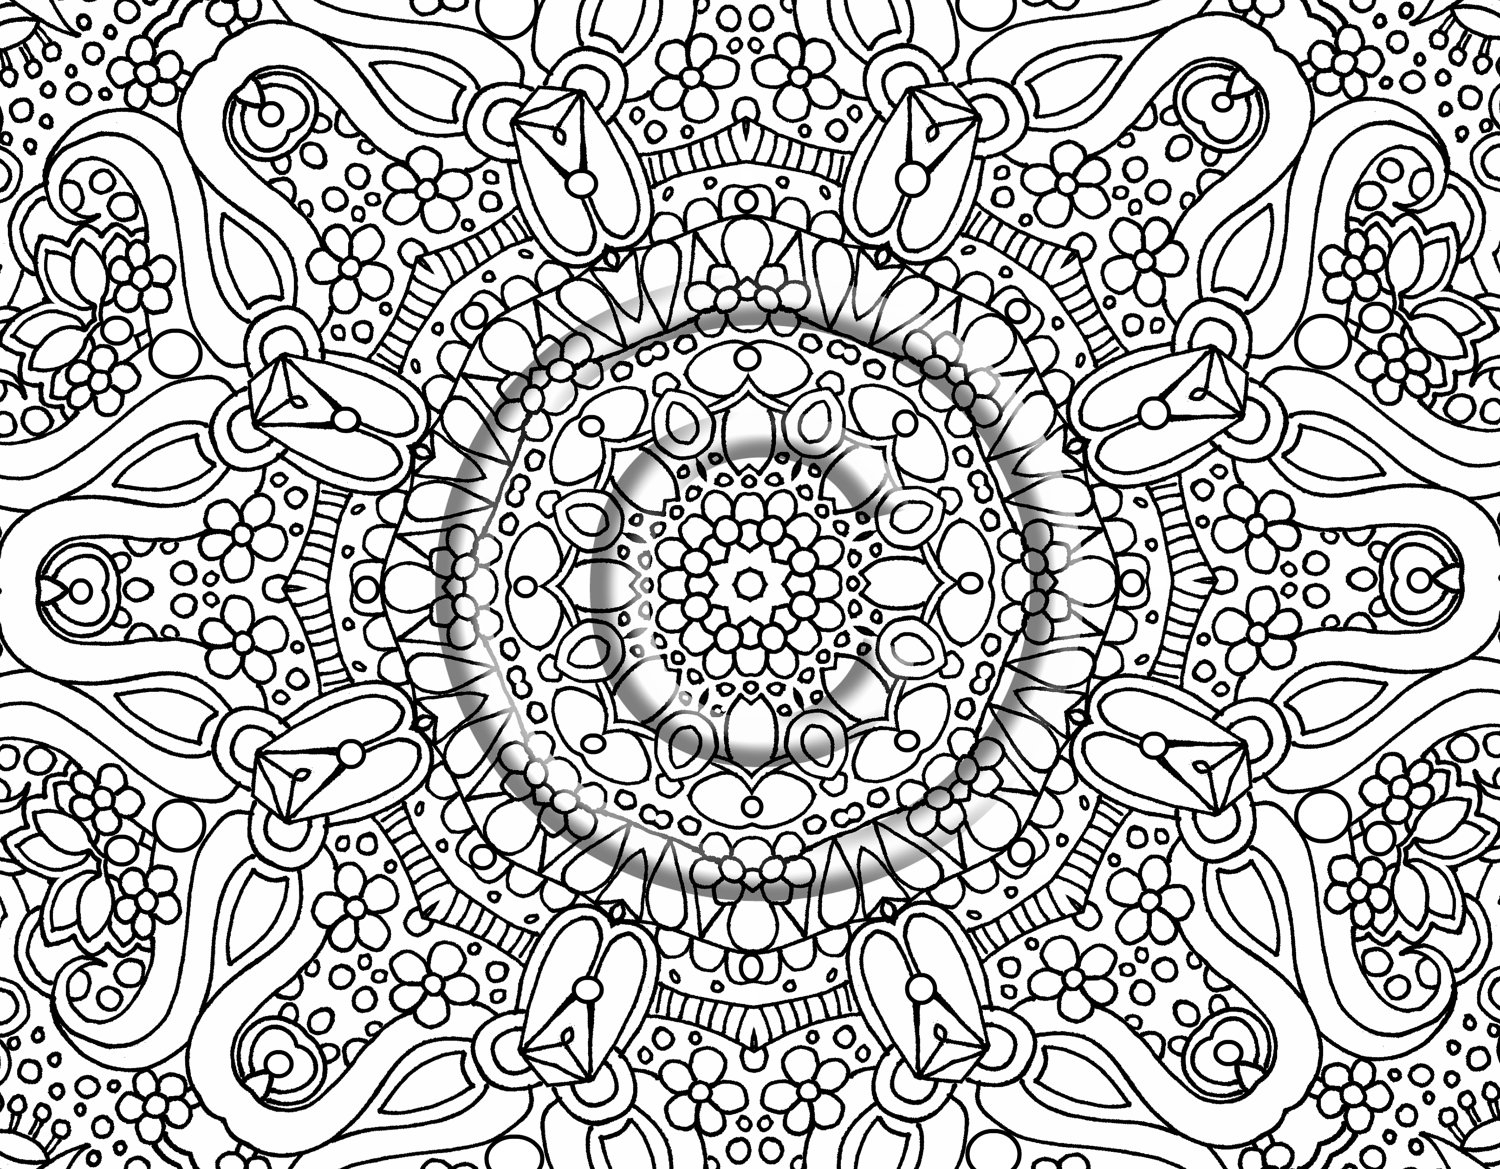 1500x1169 Printable Abstract Art Coloring Pages For Adults Printable